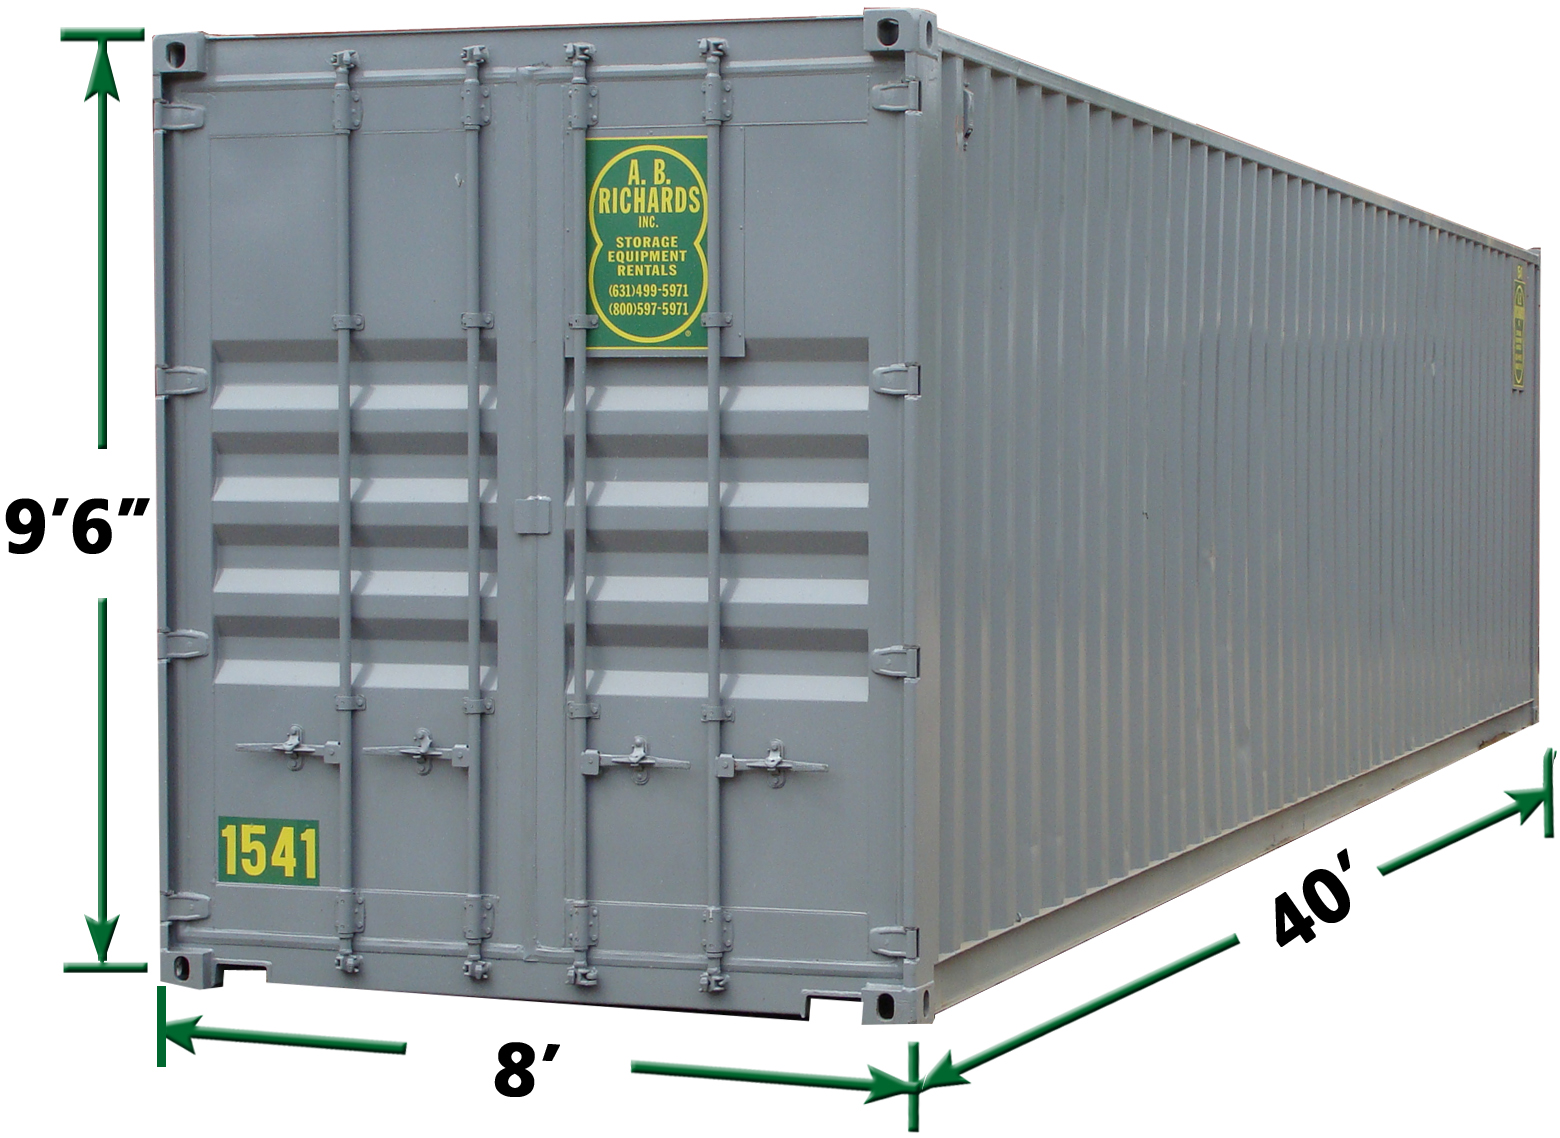 Renting 40' Jumbo Storage Units from A.B. Richards